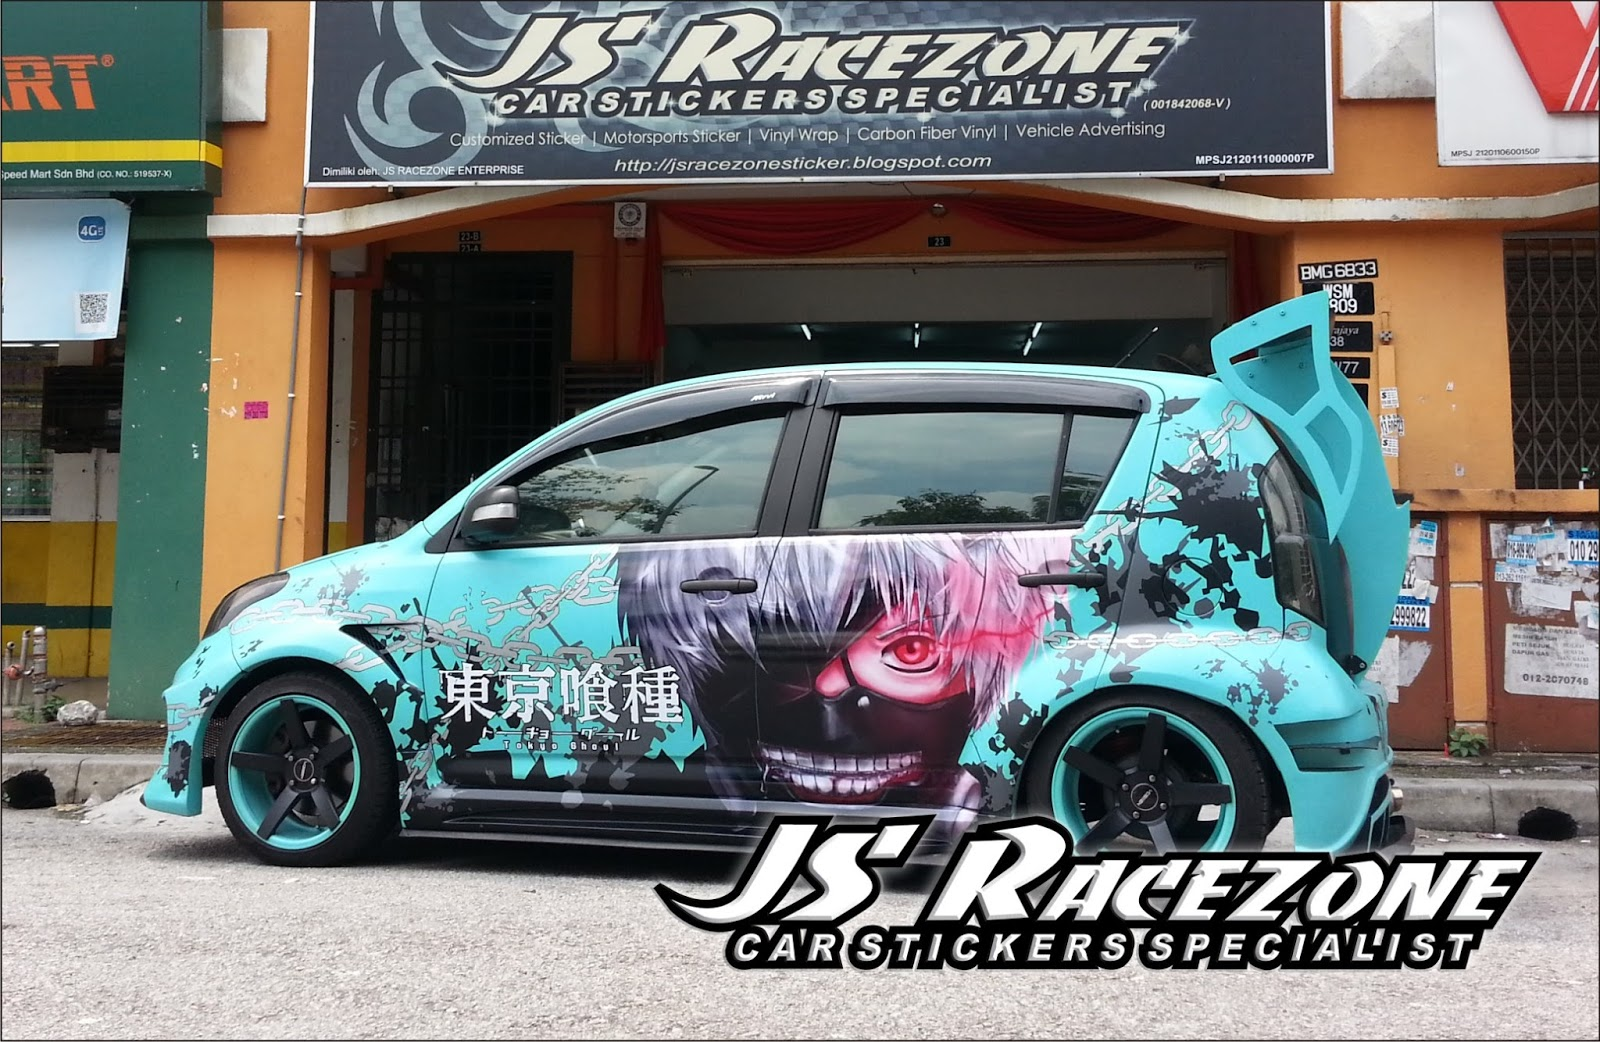 Car sticker designs images - Car Sticker Design Shop Posted By Js Racezone Stickers Shop At 2 06 Am No